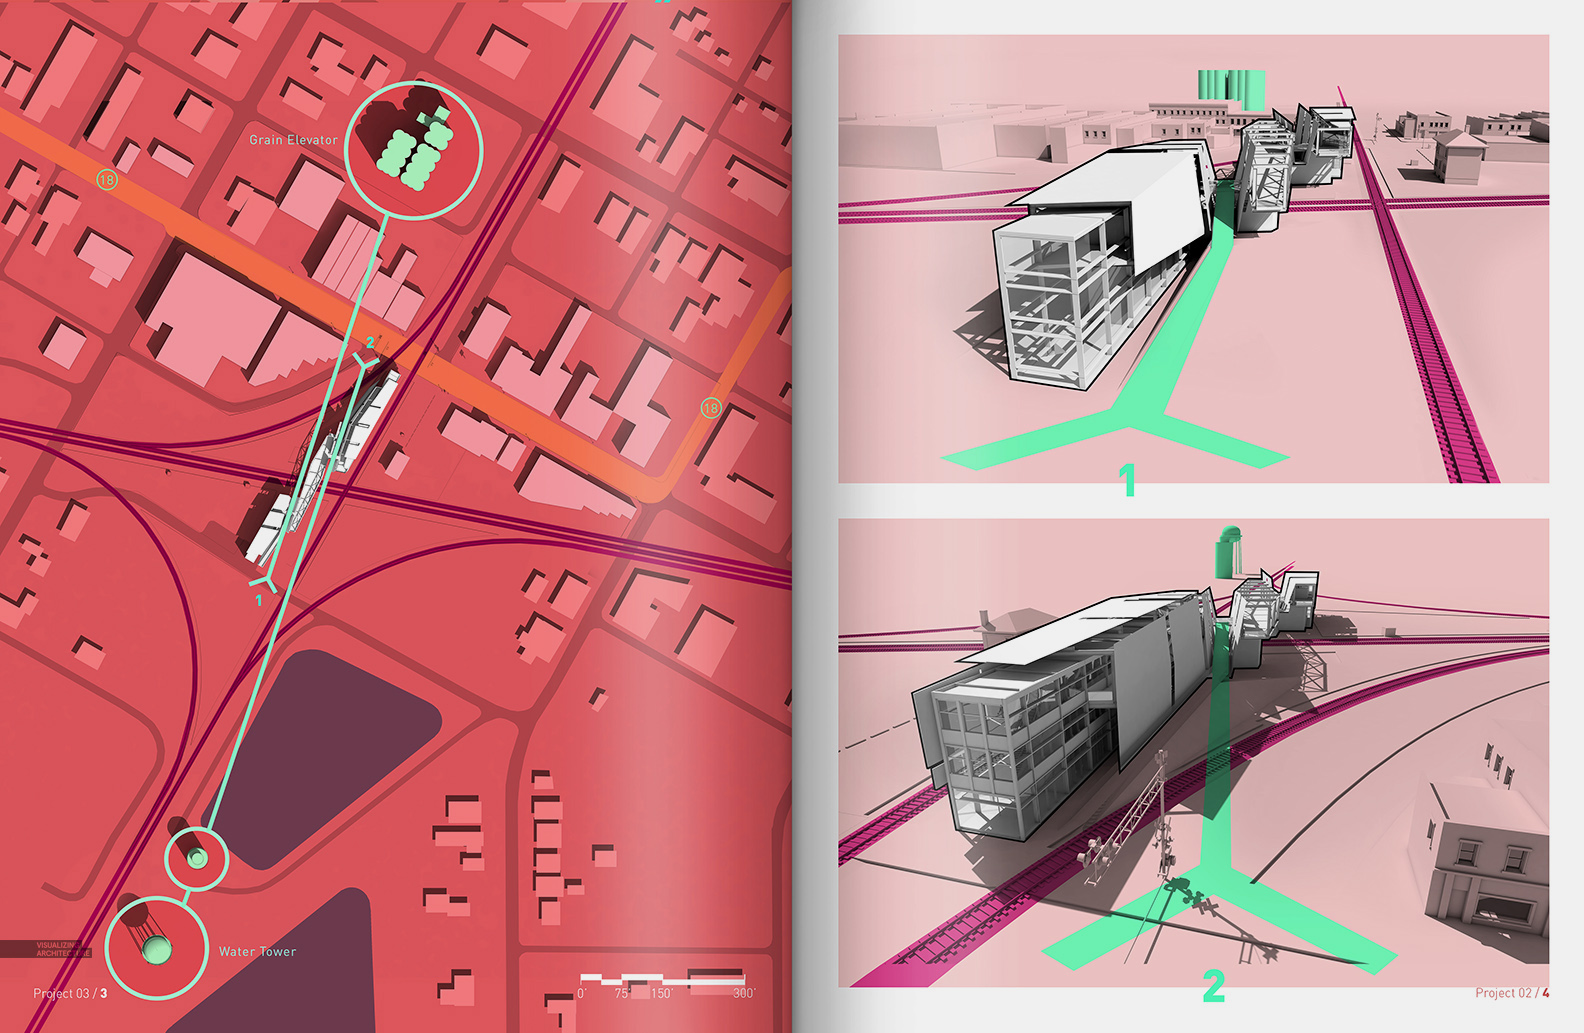 Train Pavilion Diagrams Visualizing Architecture Architectural Drawings And Diagram 1 Spread One